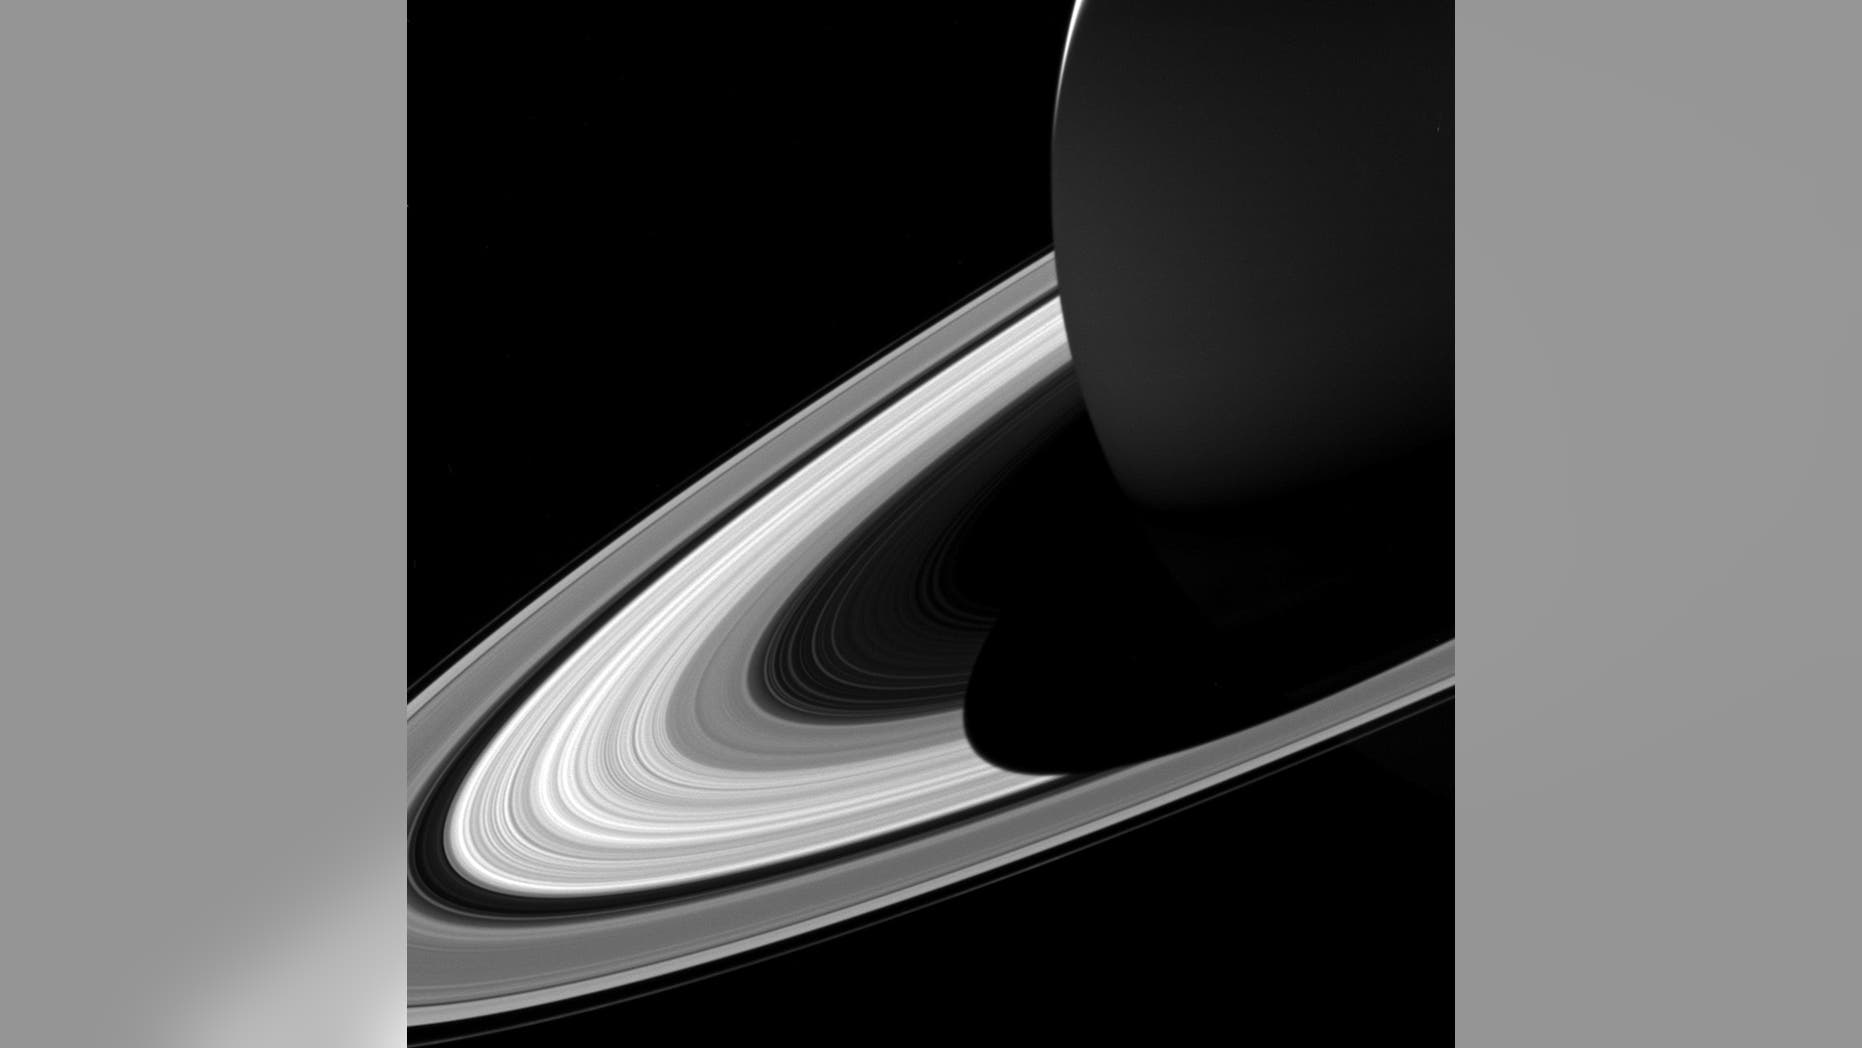 NASA's Cassini spacecraft captured this image of Saturn's shadow covering part the planet's rings on Feb. 3, 2017.